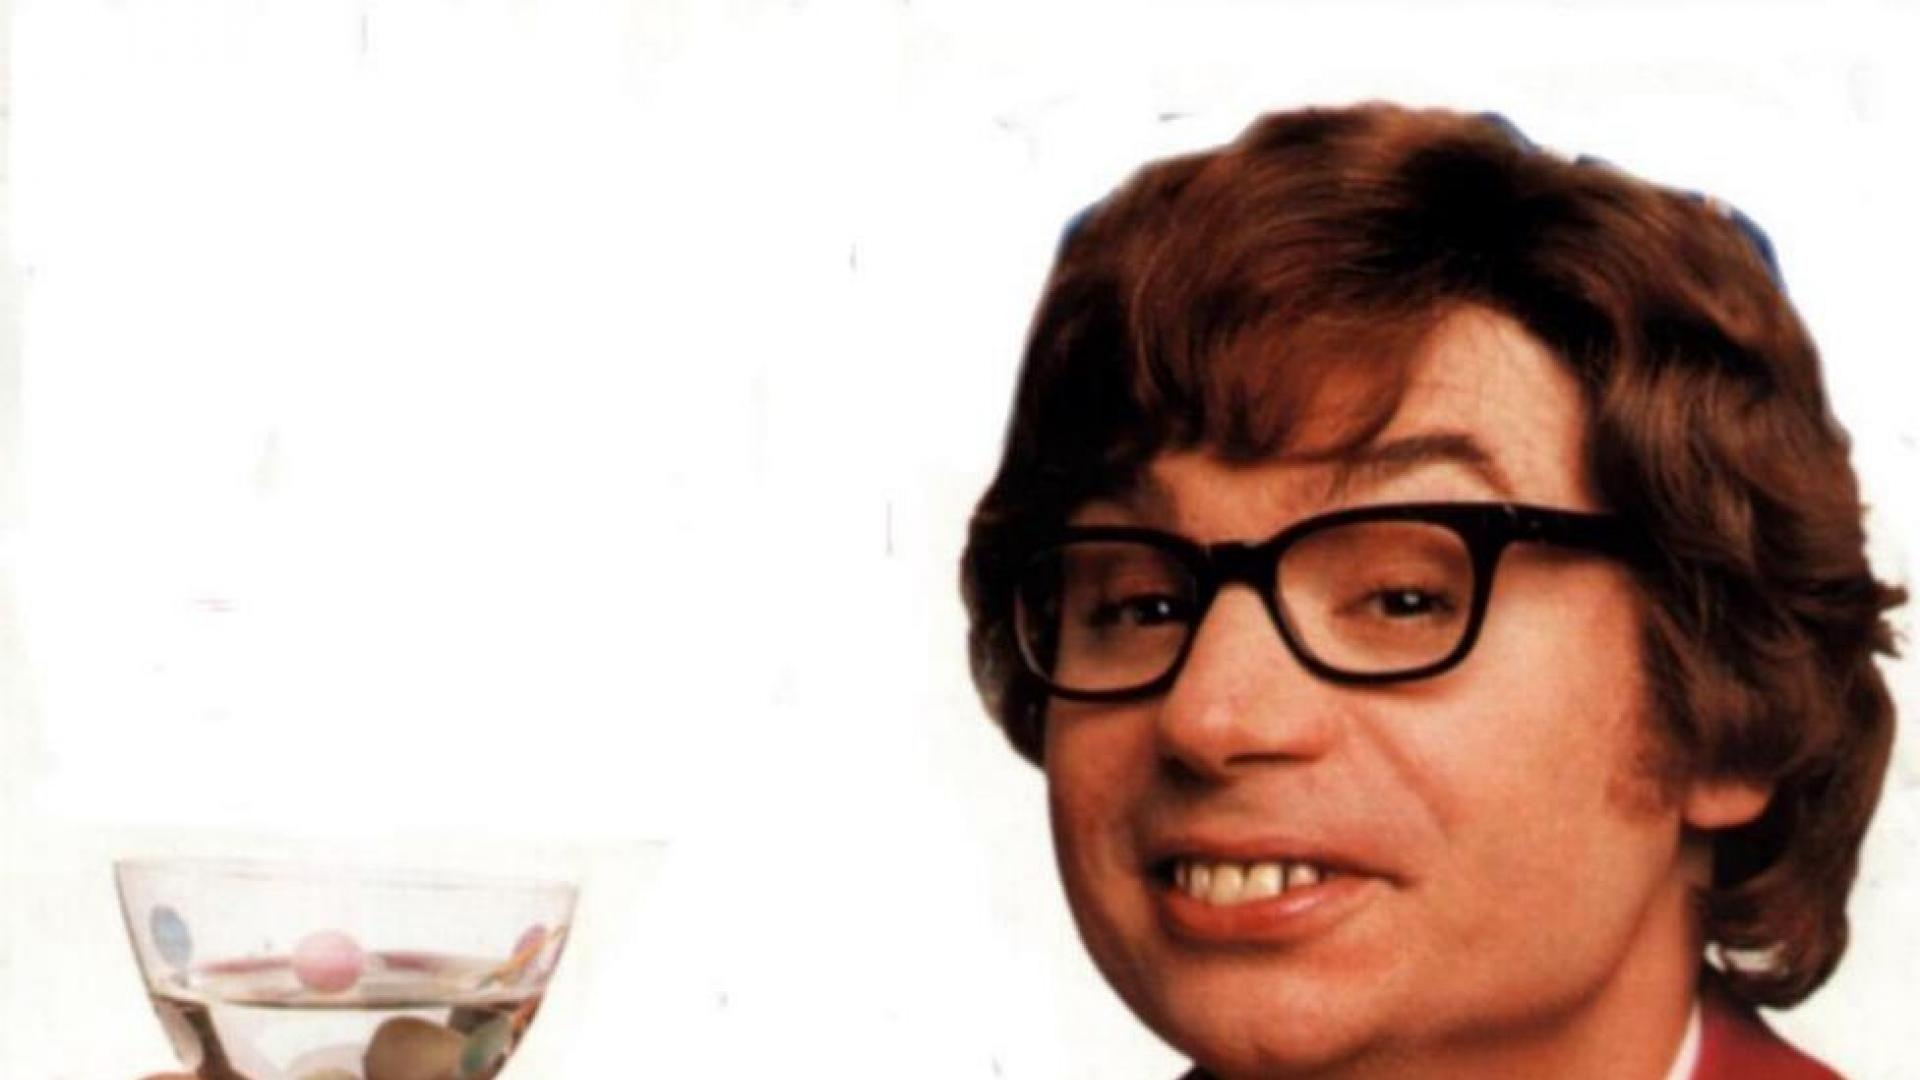 PC Austin Powers Wallpapers, Crocifissa Menauteau